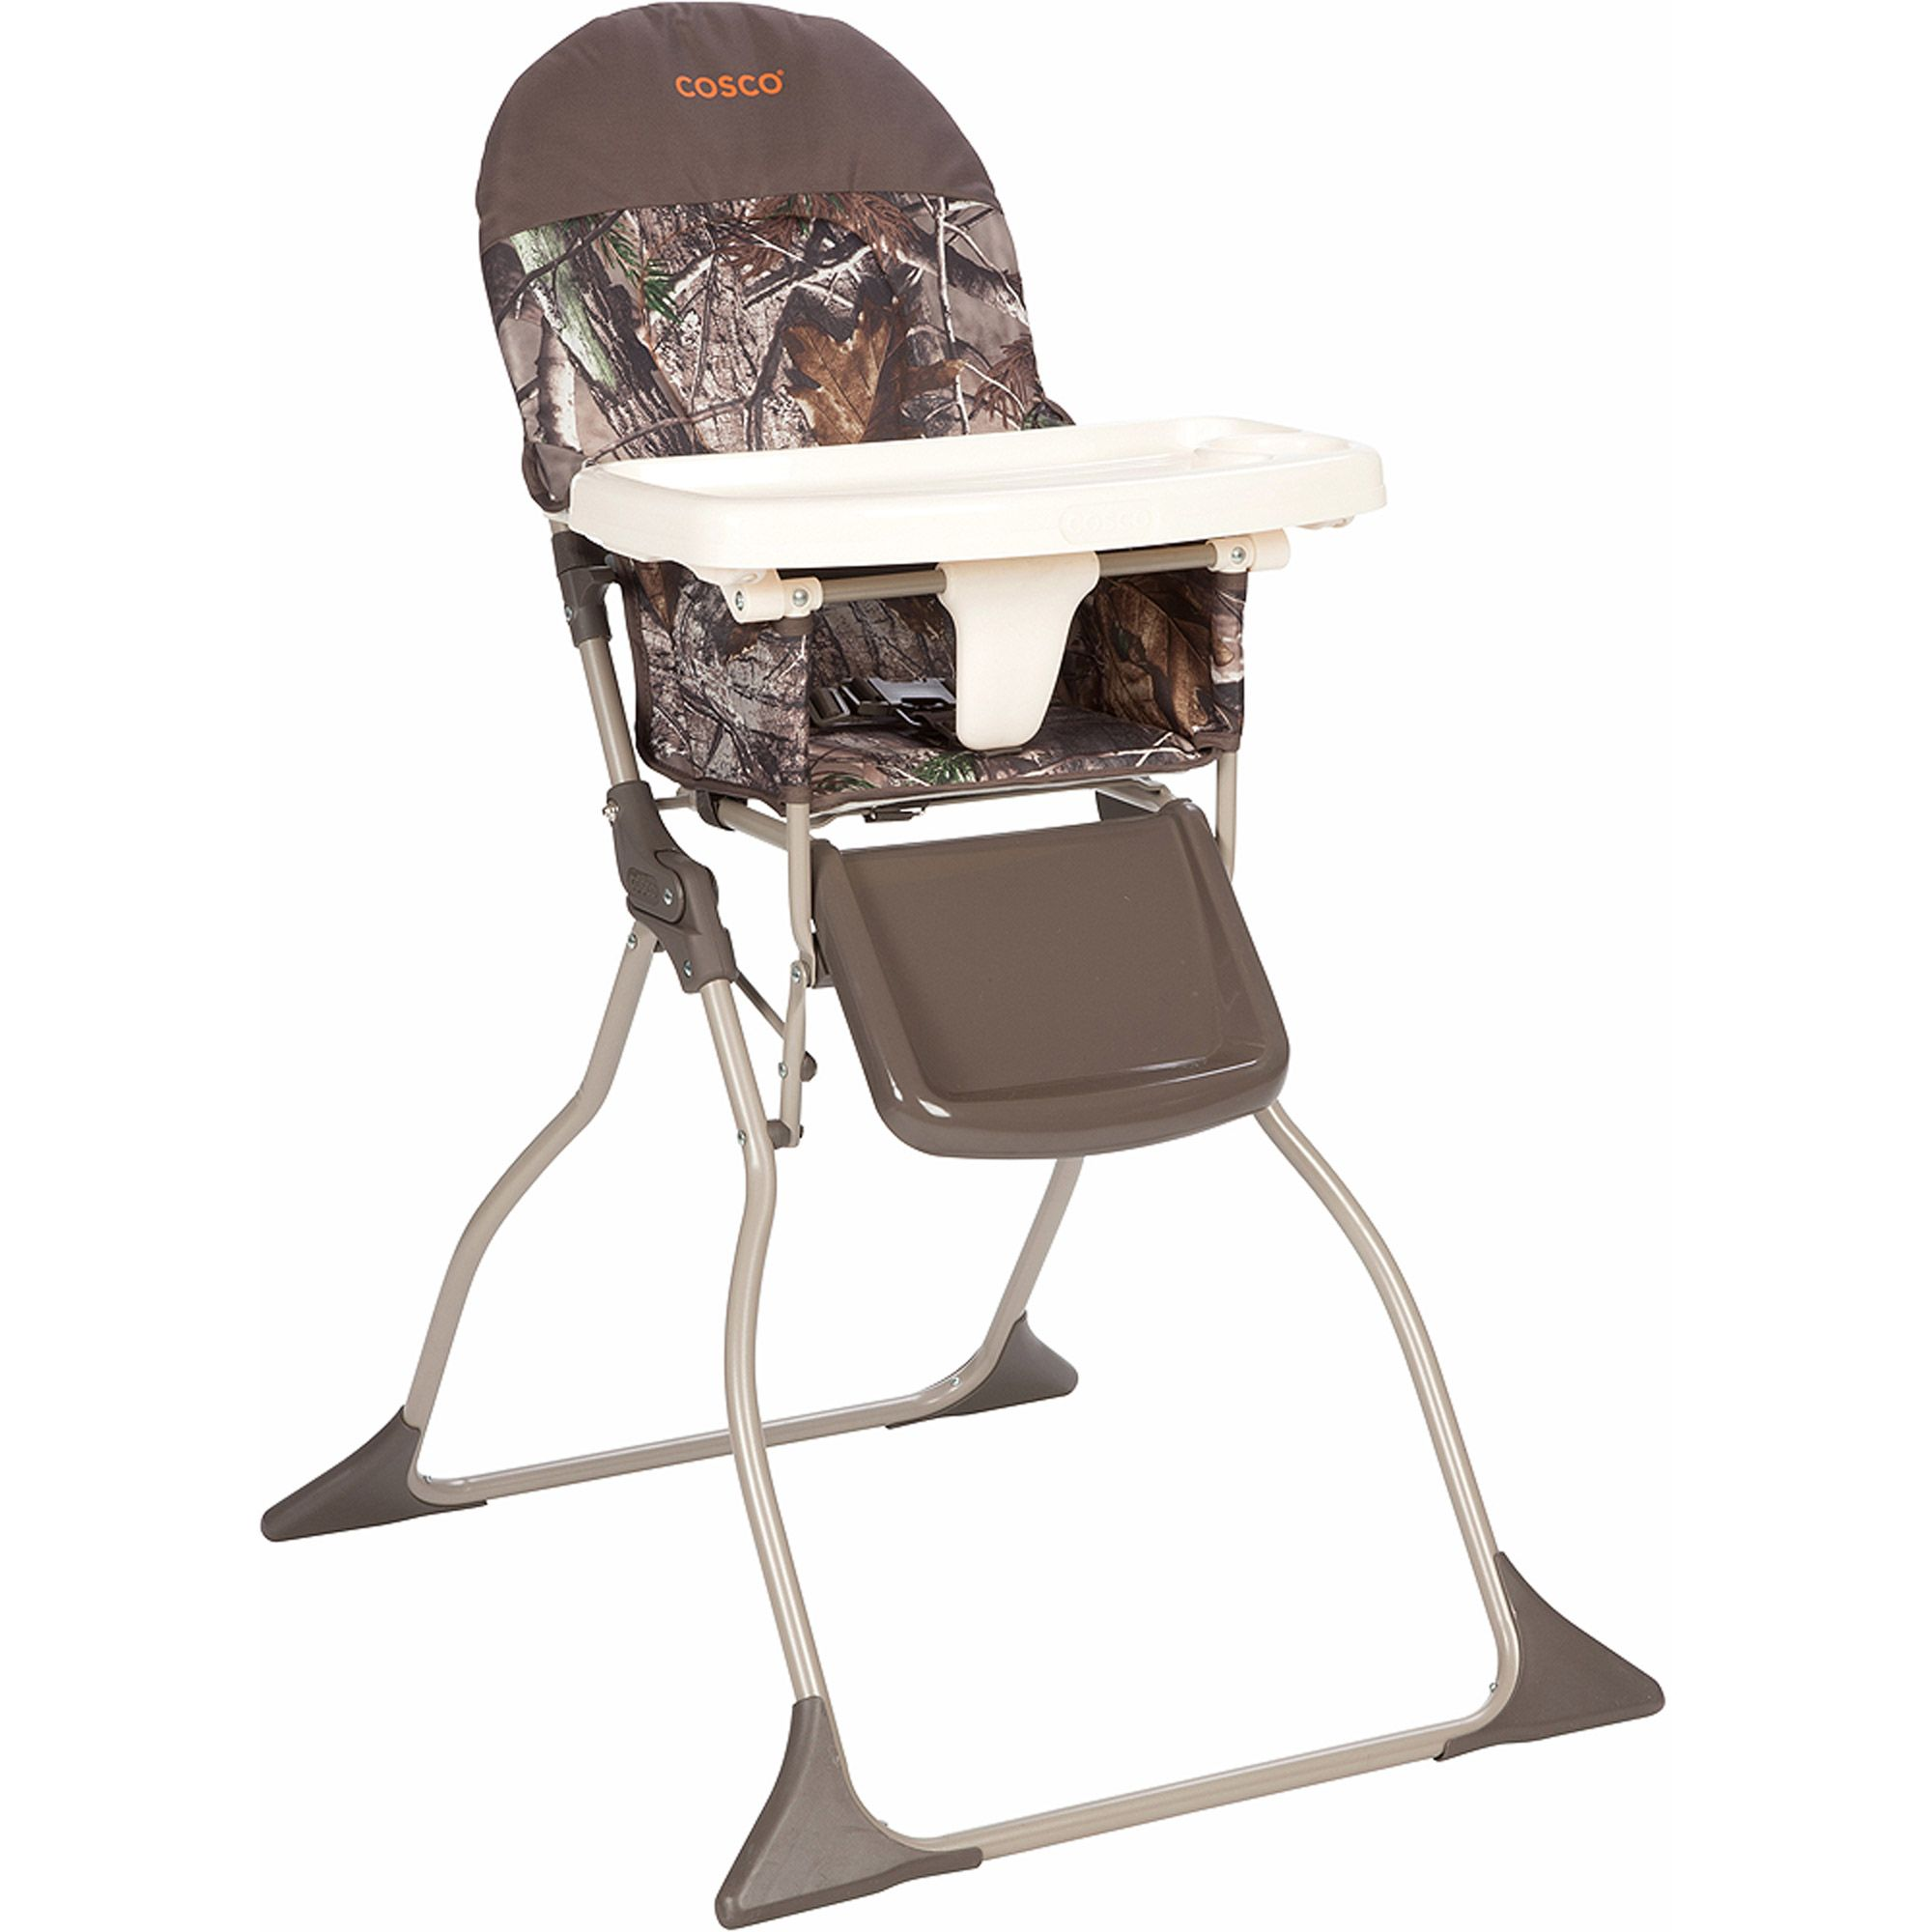 High Chair For Baby Boy Cosco Simple Fold High Chair Realtree Orange Baby